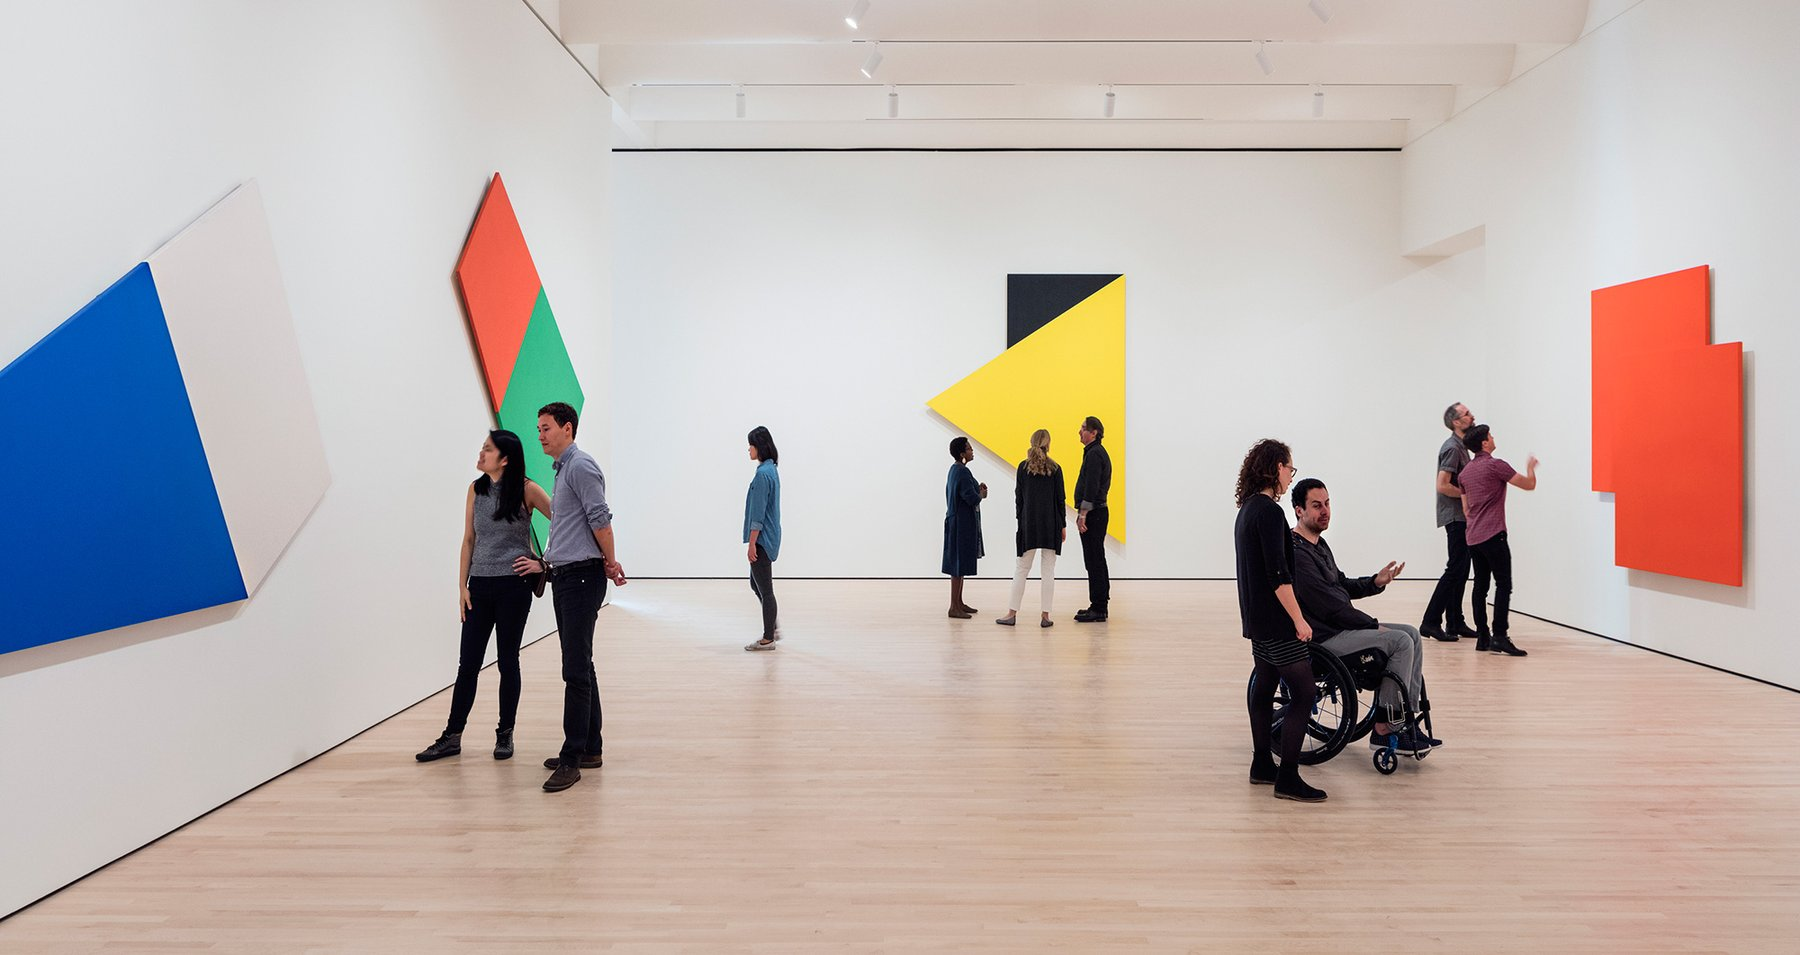 A group of people looking at paintings by Ellsworth Kelly